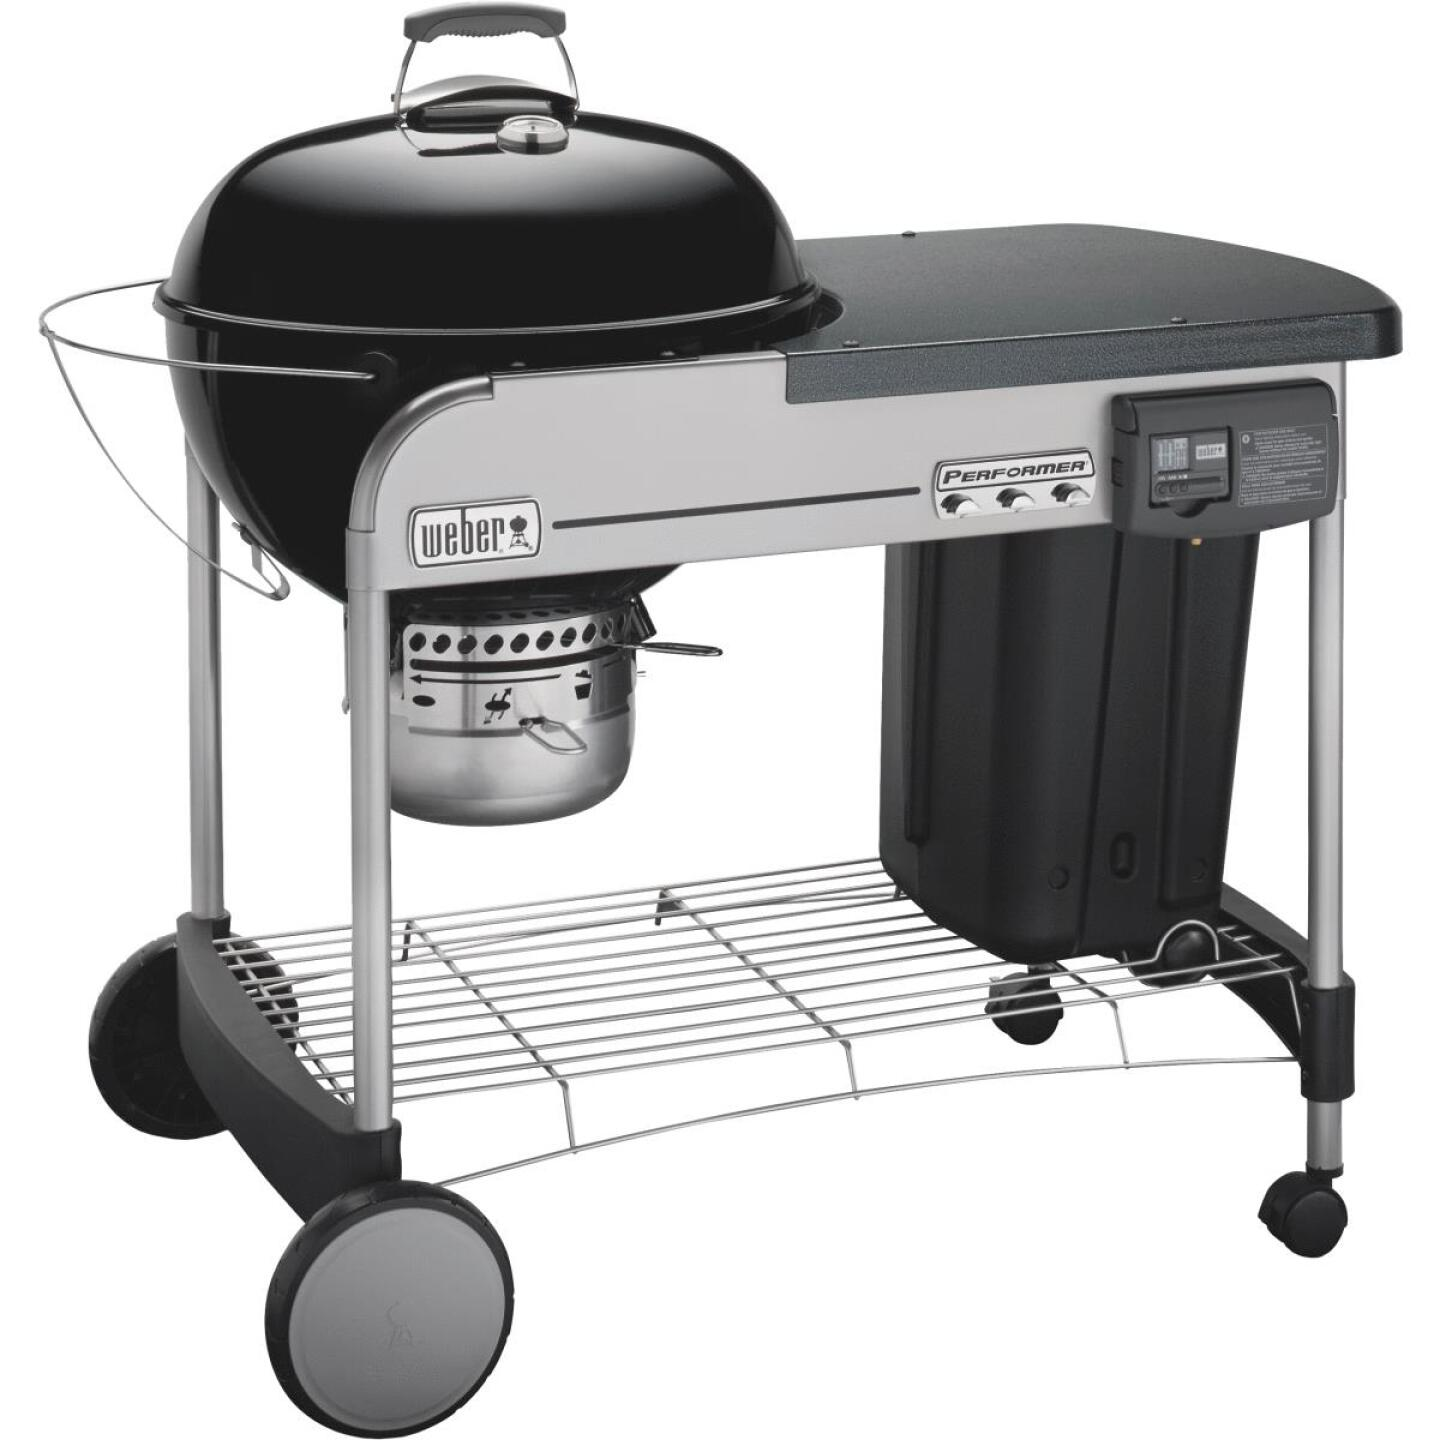 Weber Performer Deluxe 22 In. Black Charcoal Grill Image 1